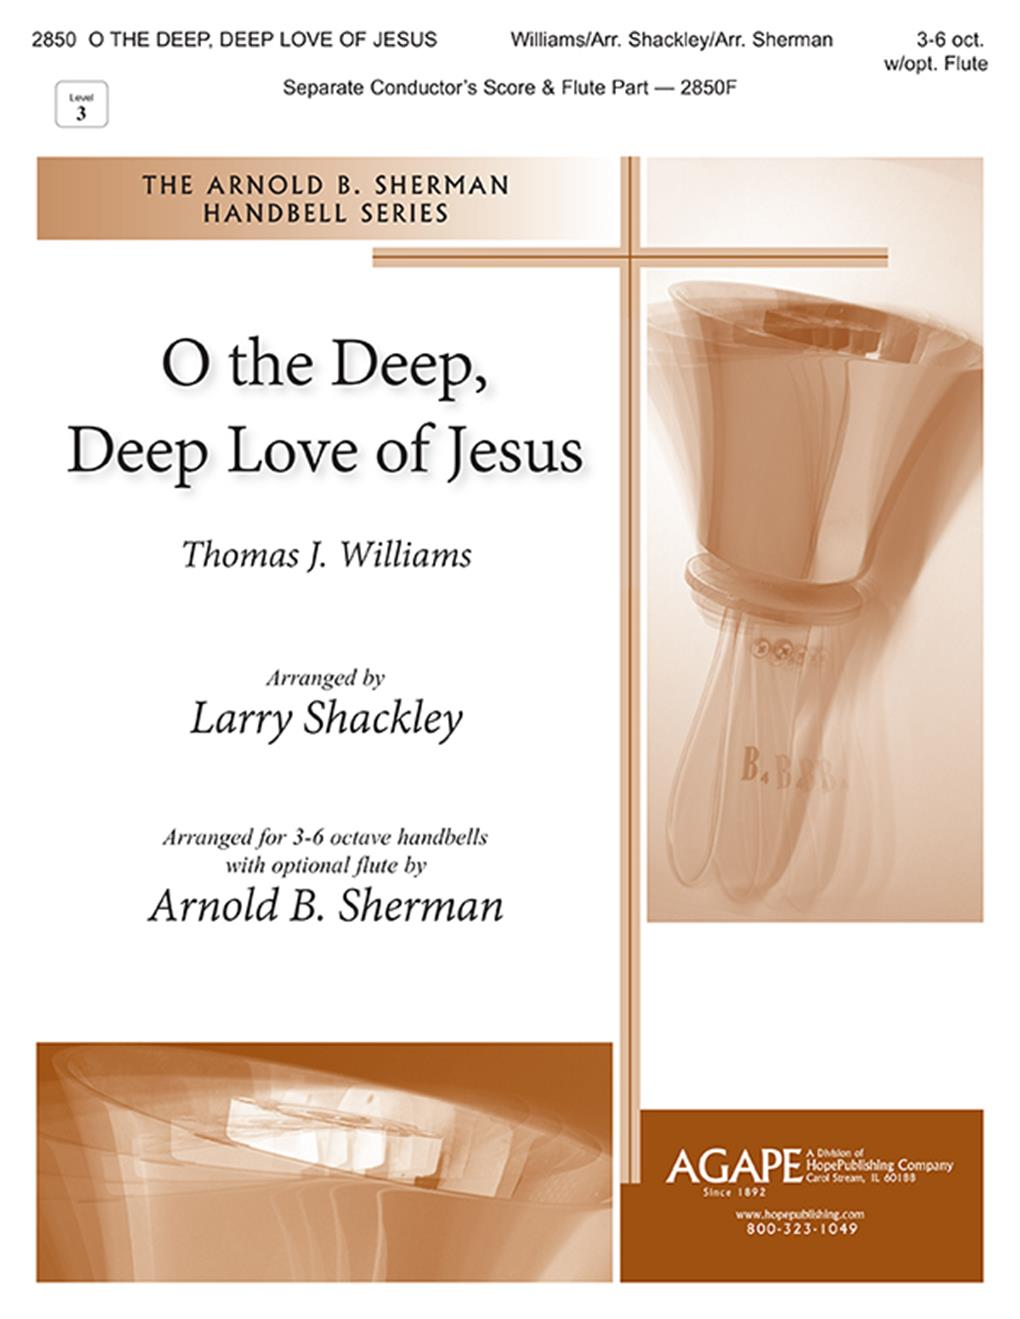 O The Deep Deep Love of Jesus - 3-6 oct. Cover Image